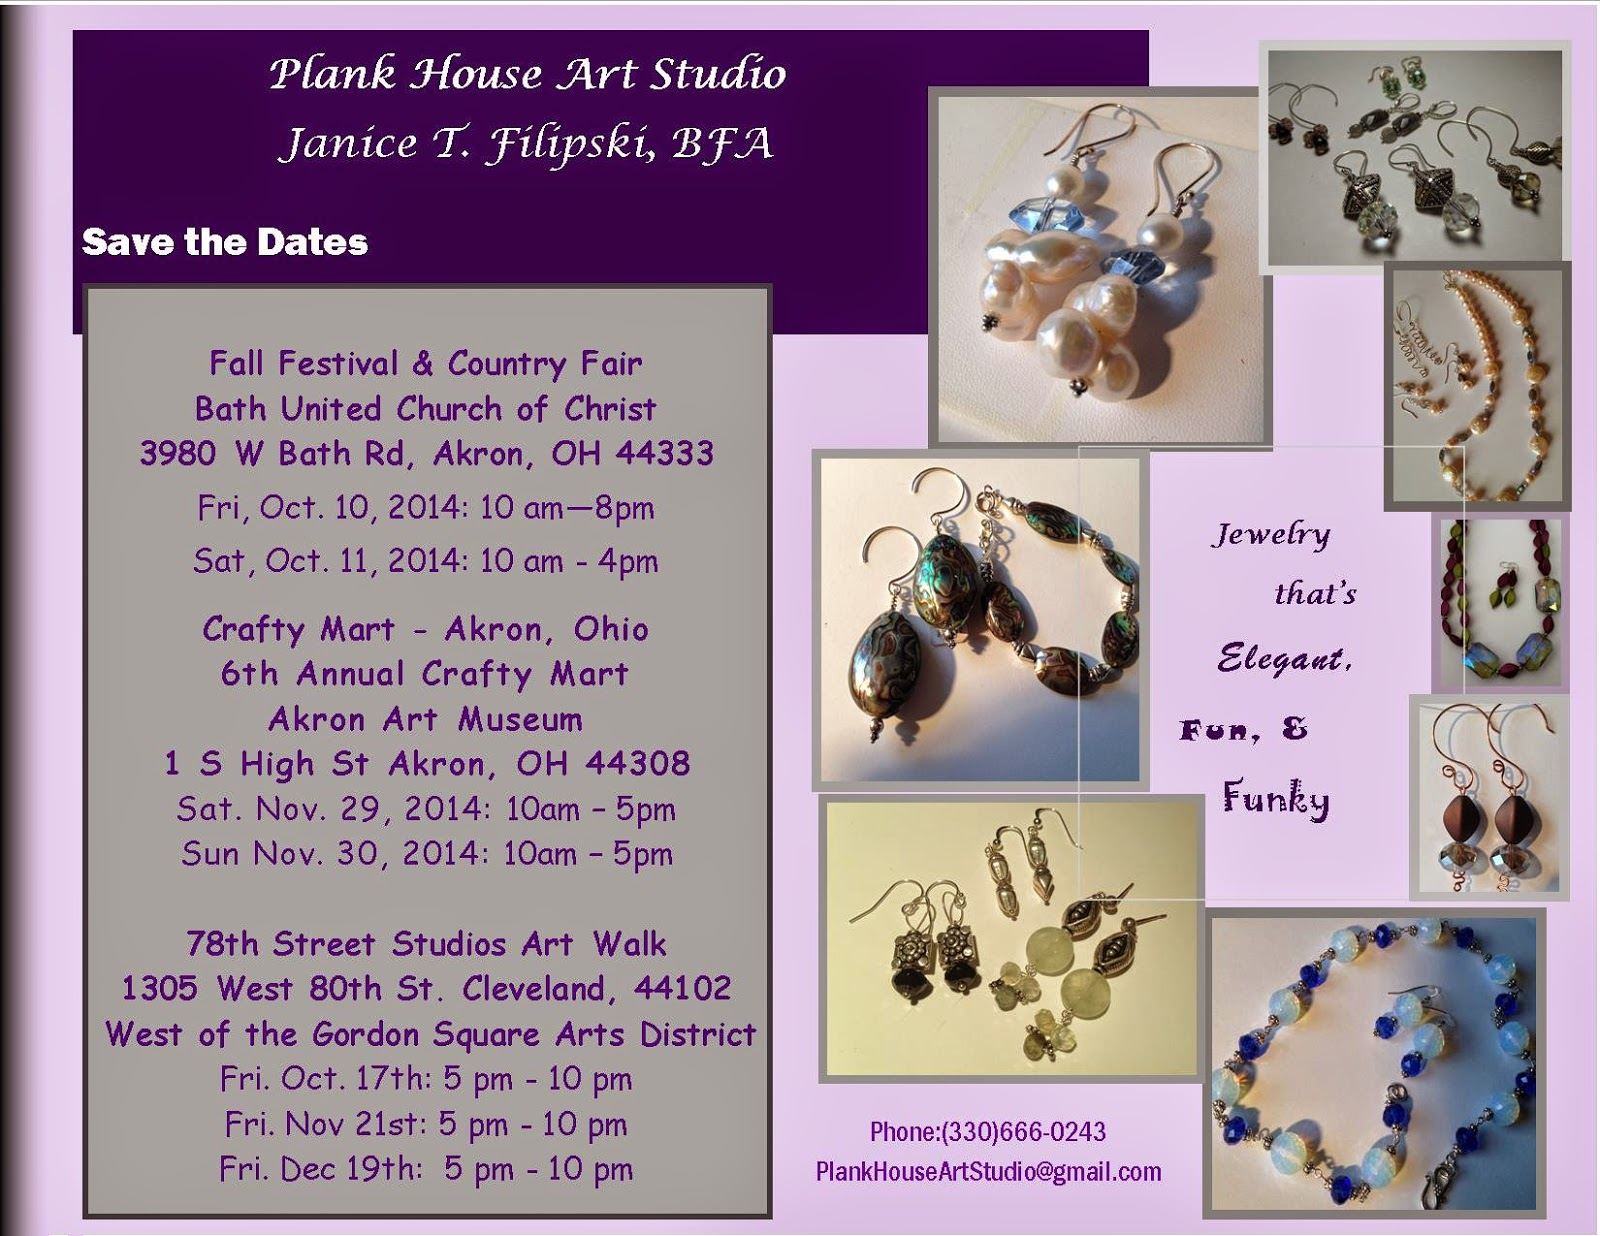 janice filipski plank house art studio